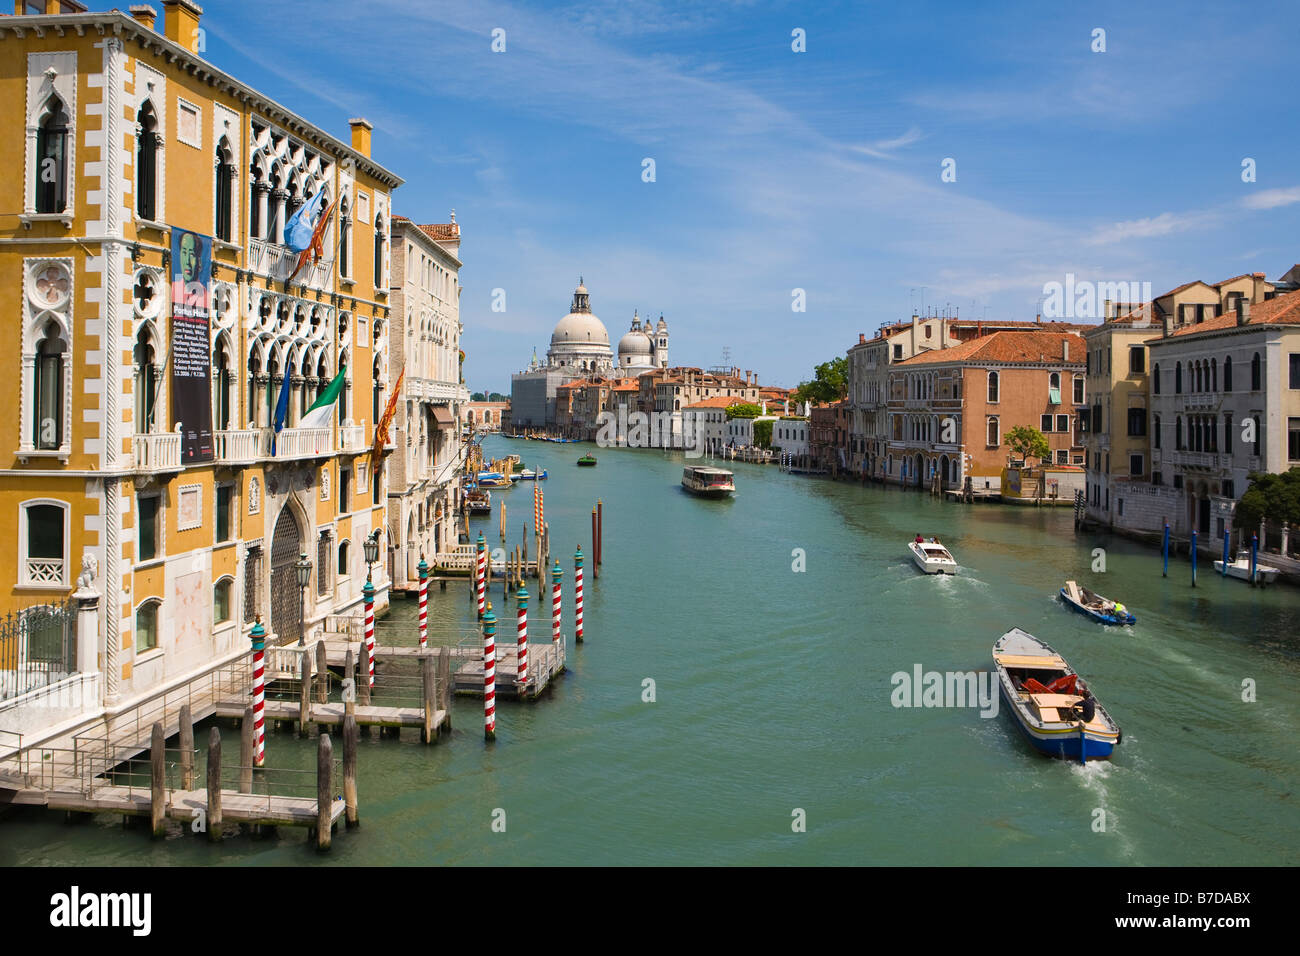 A view of the Grand Canal in Venice, Italy from the Academia Bridge. - Stock Image